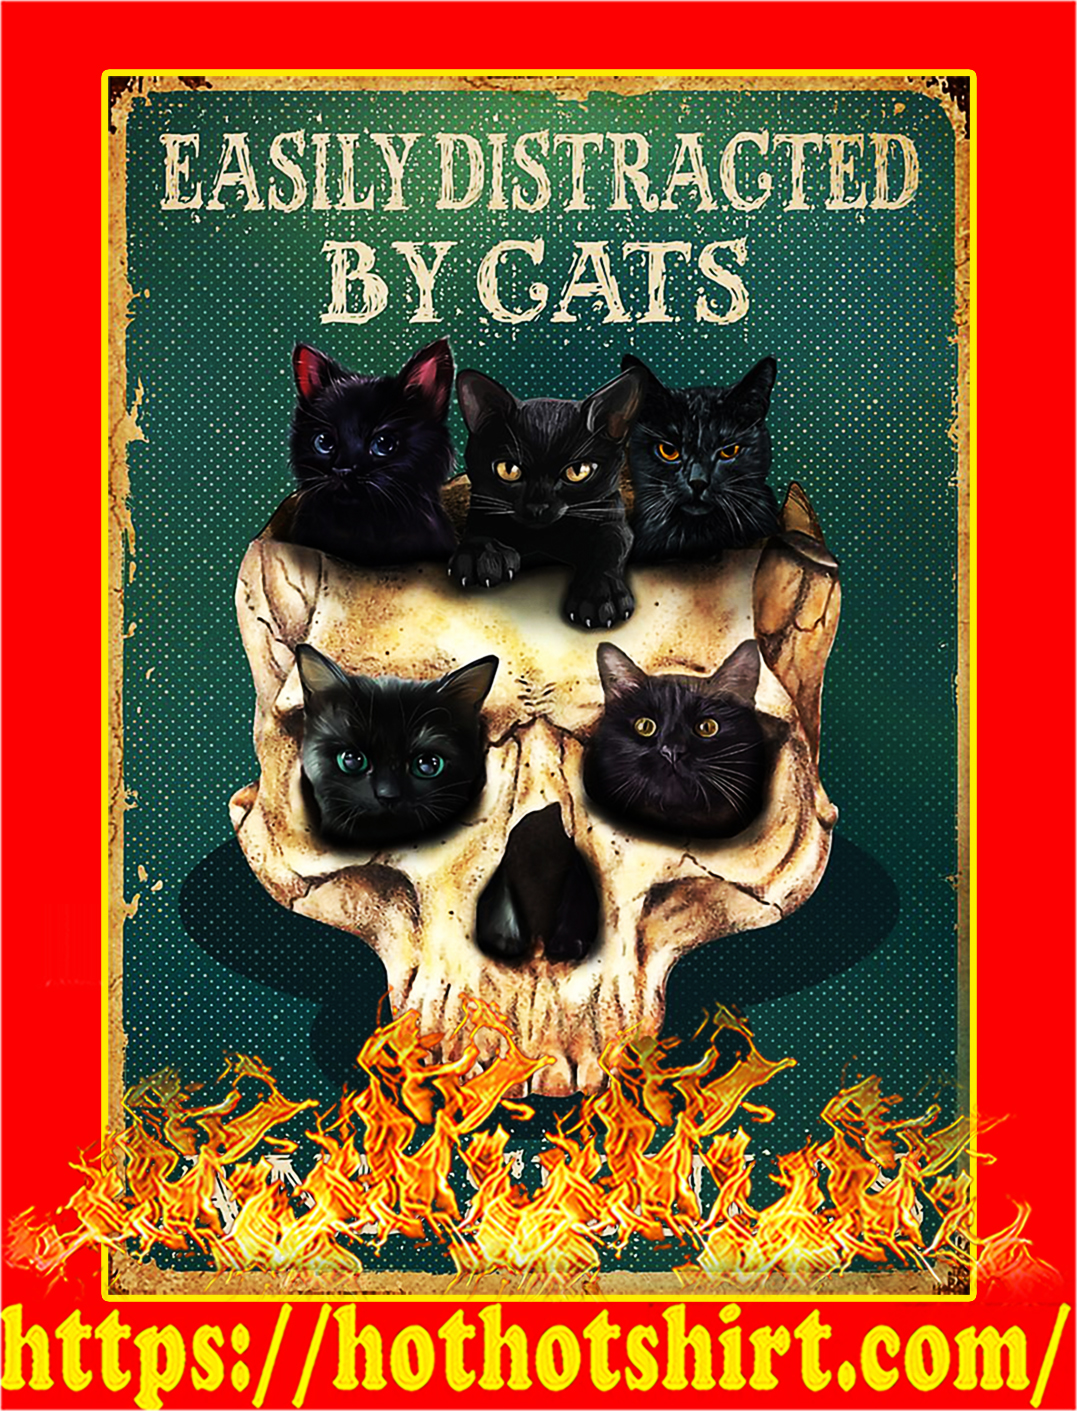 Easily distracted by cats and skulls poster - A3